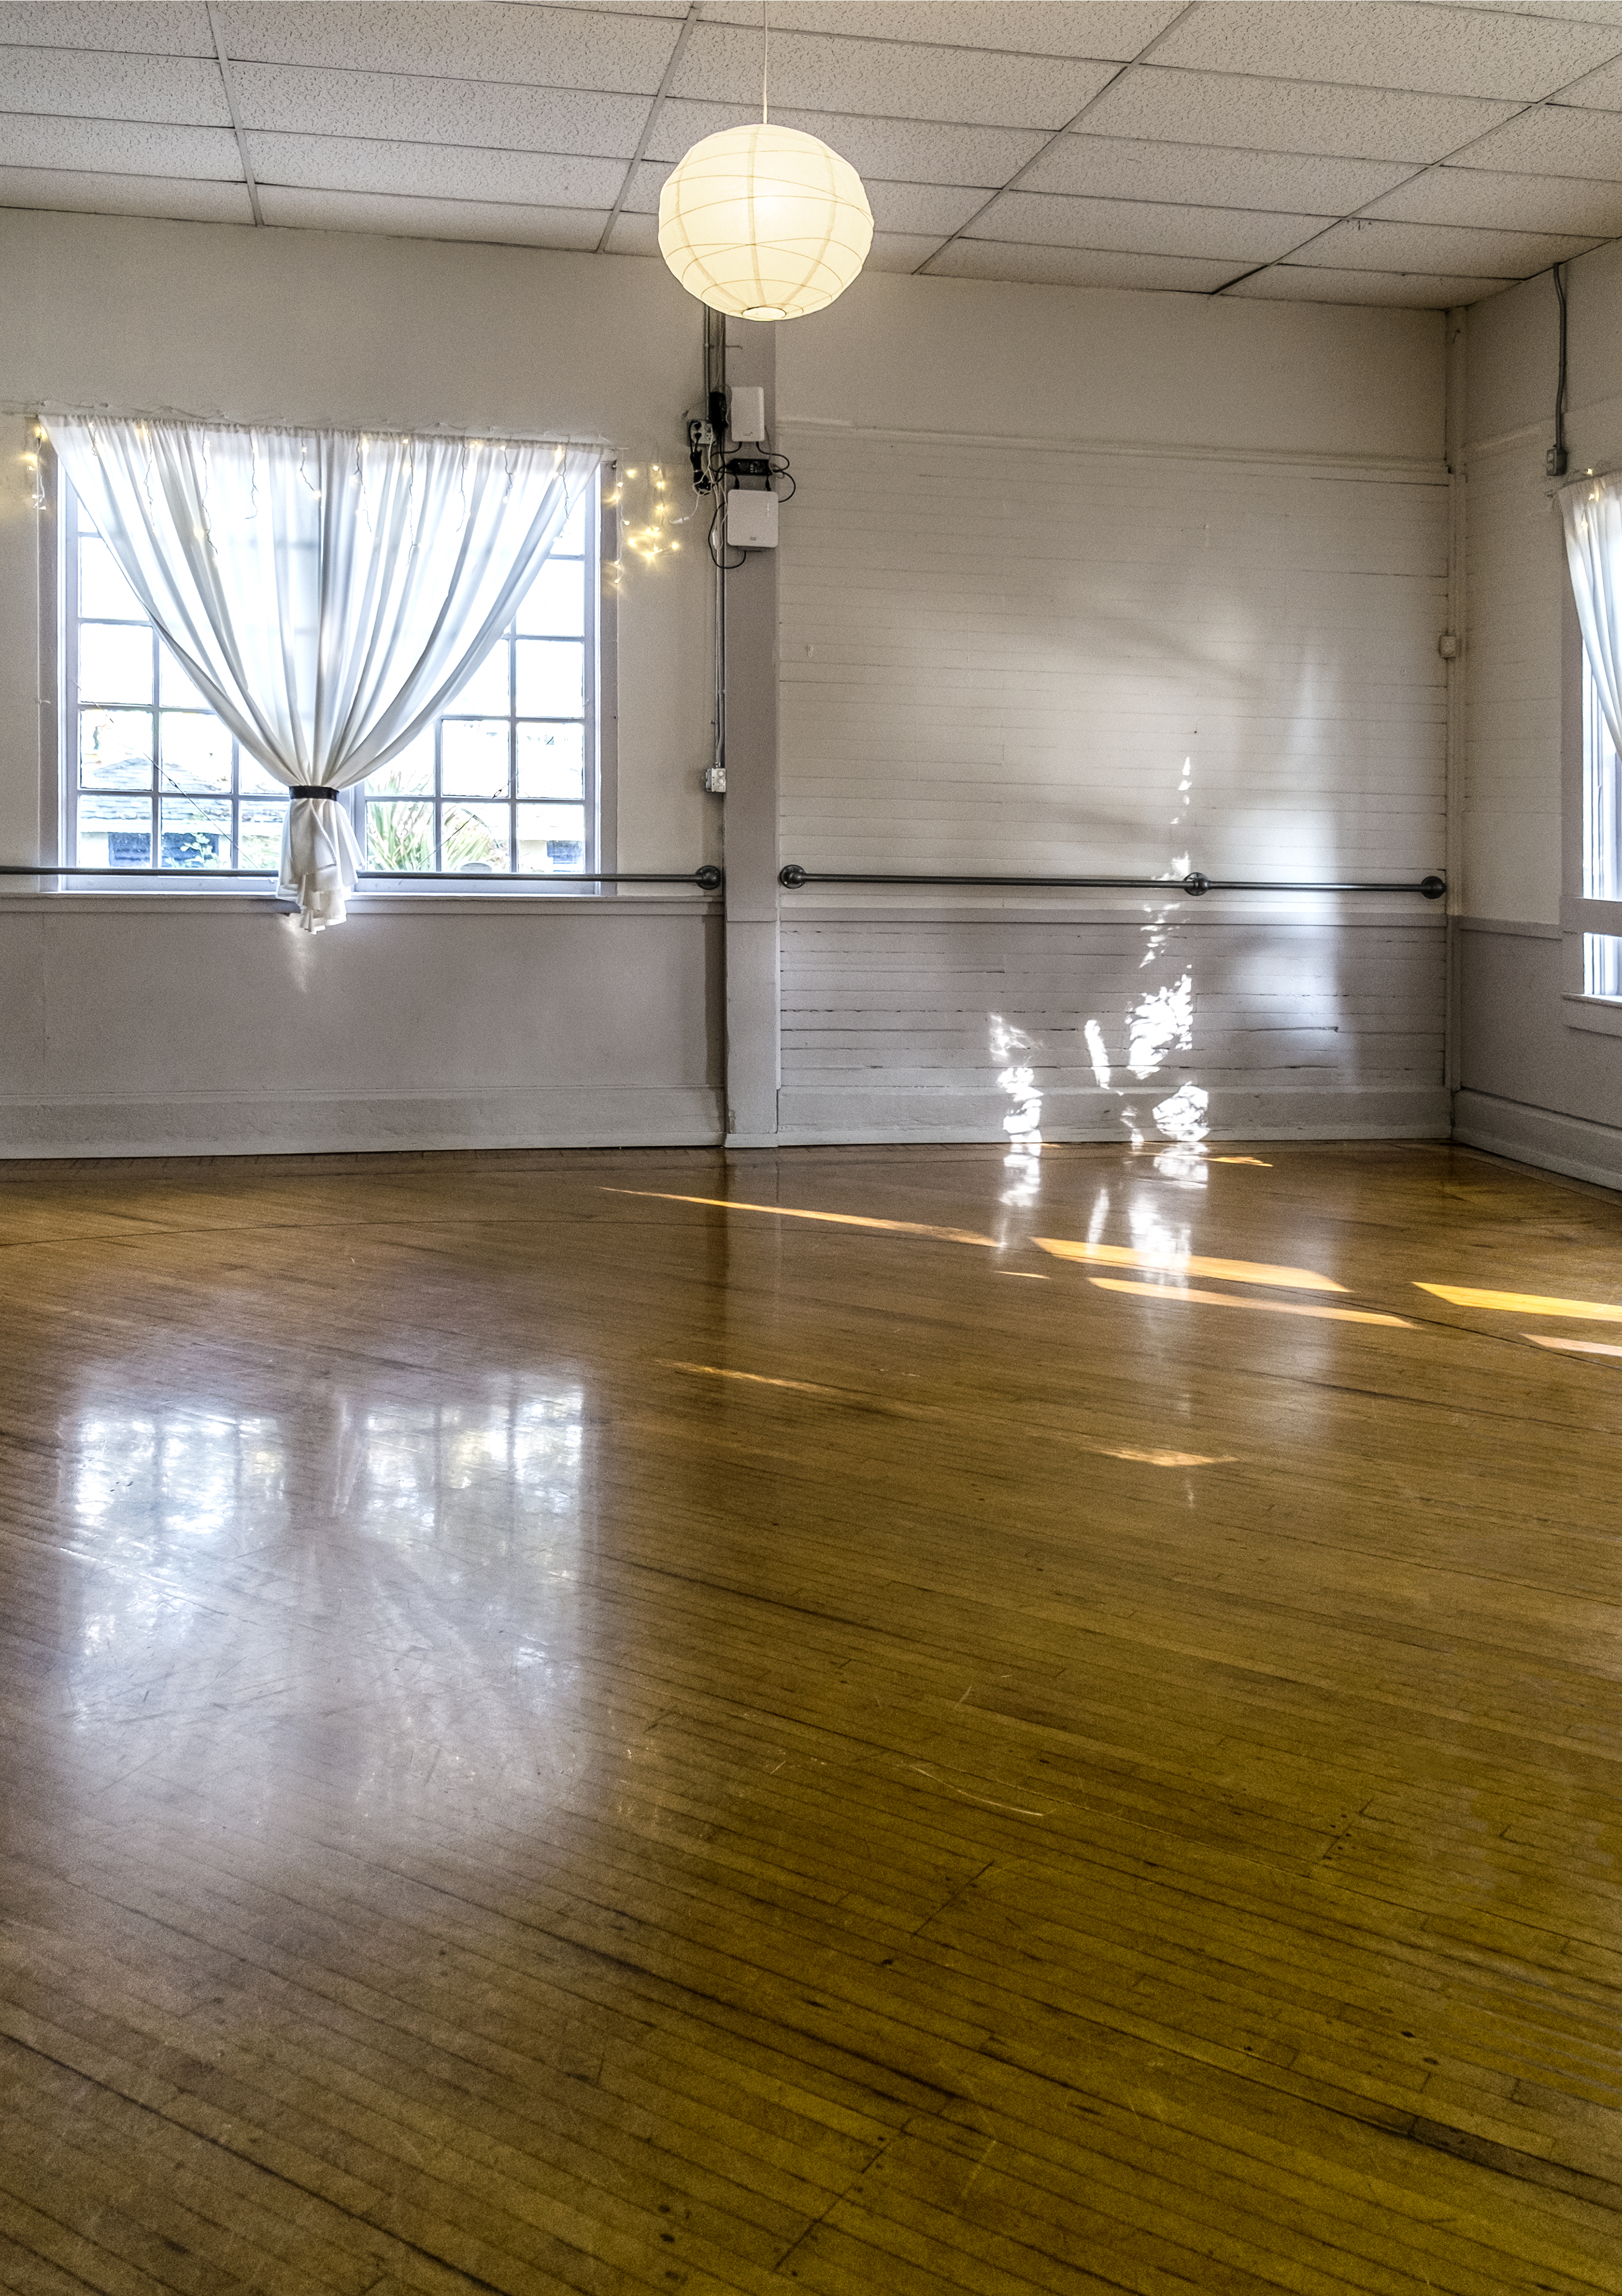 Windows from dance hall reflect light from outside onto polished wooden floor.